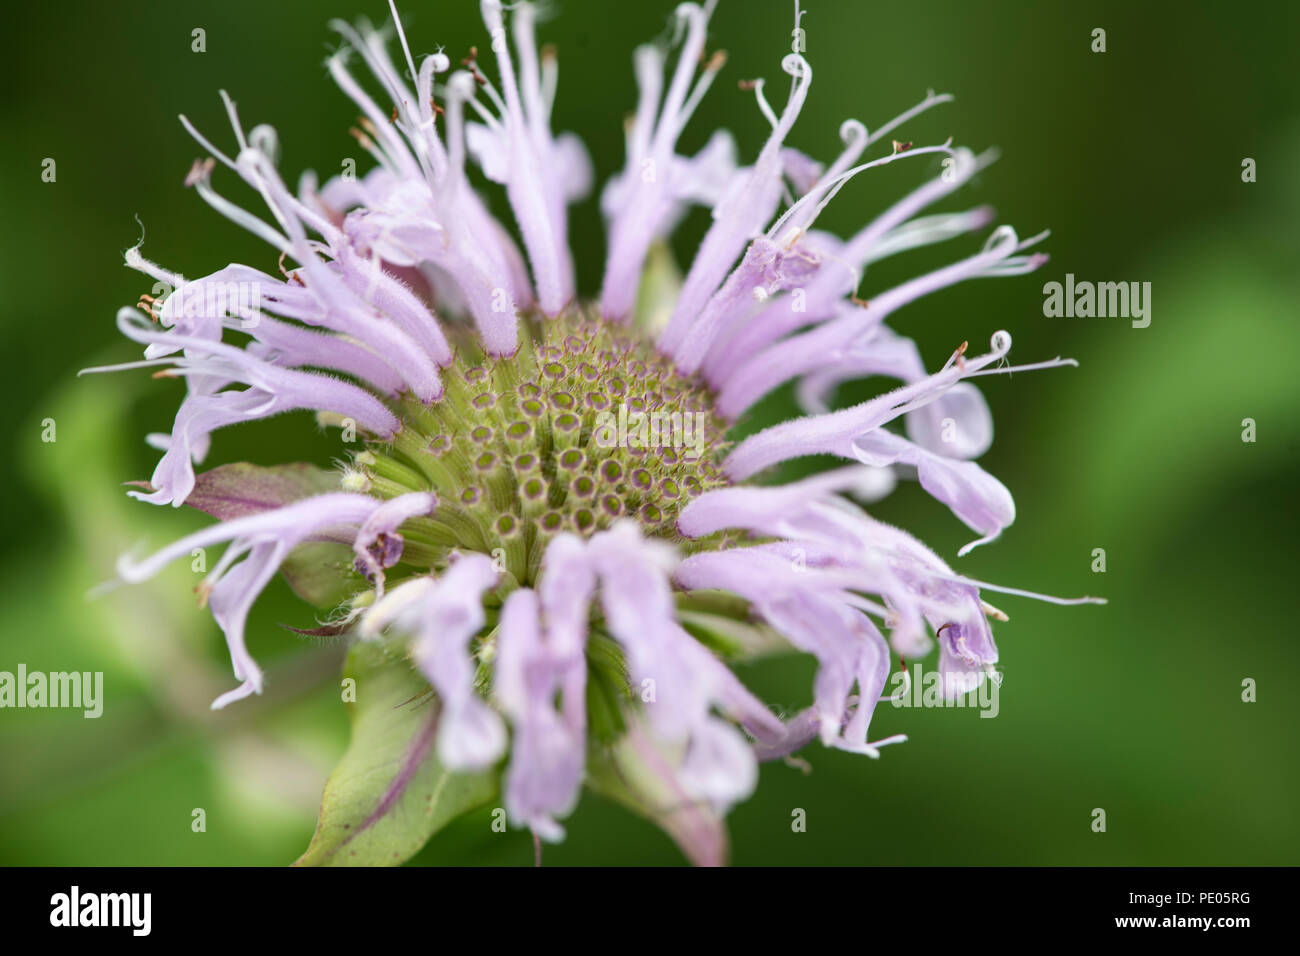 Pale bee balm blossom - Stock Image